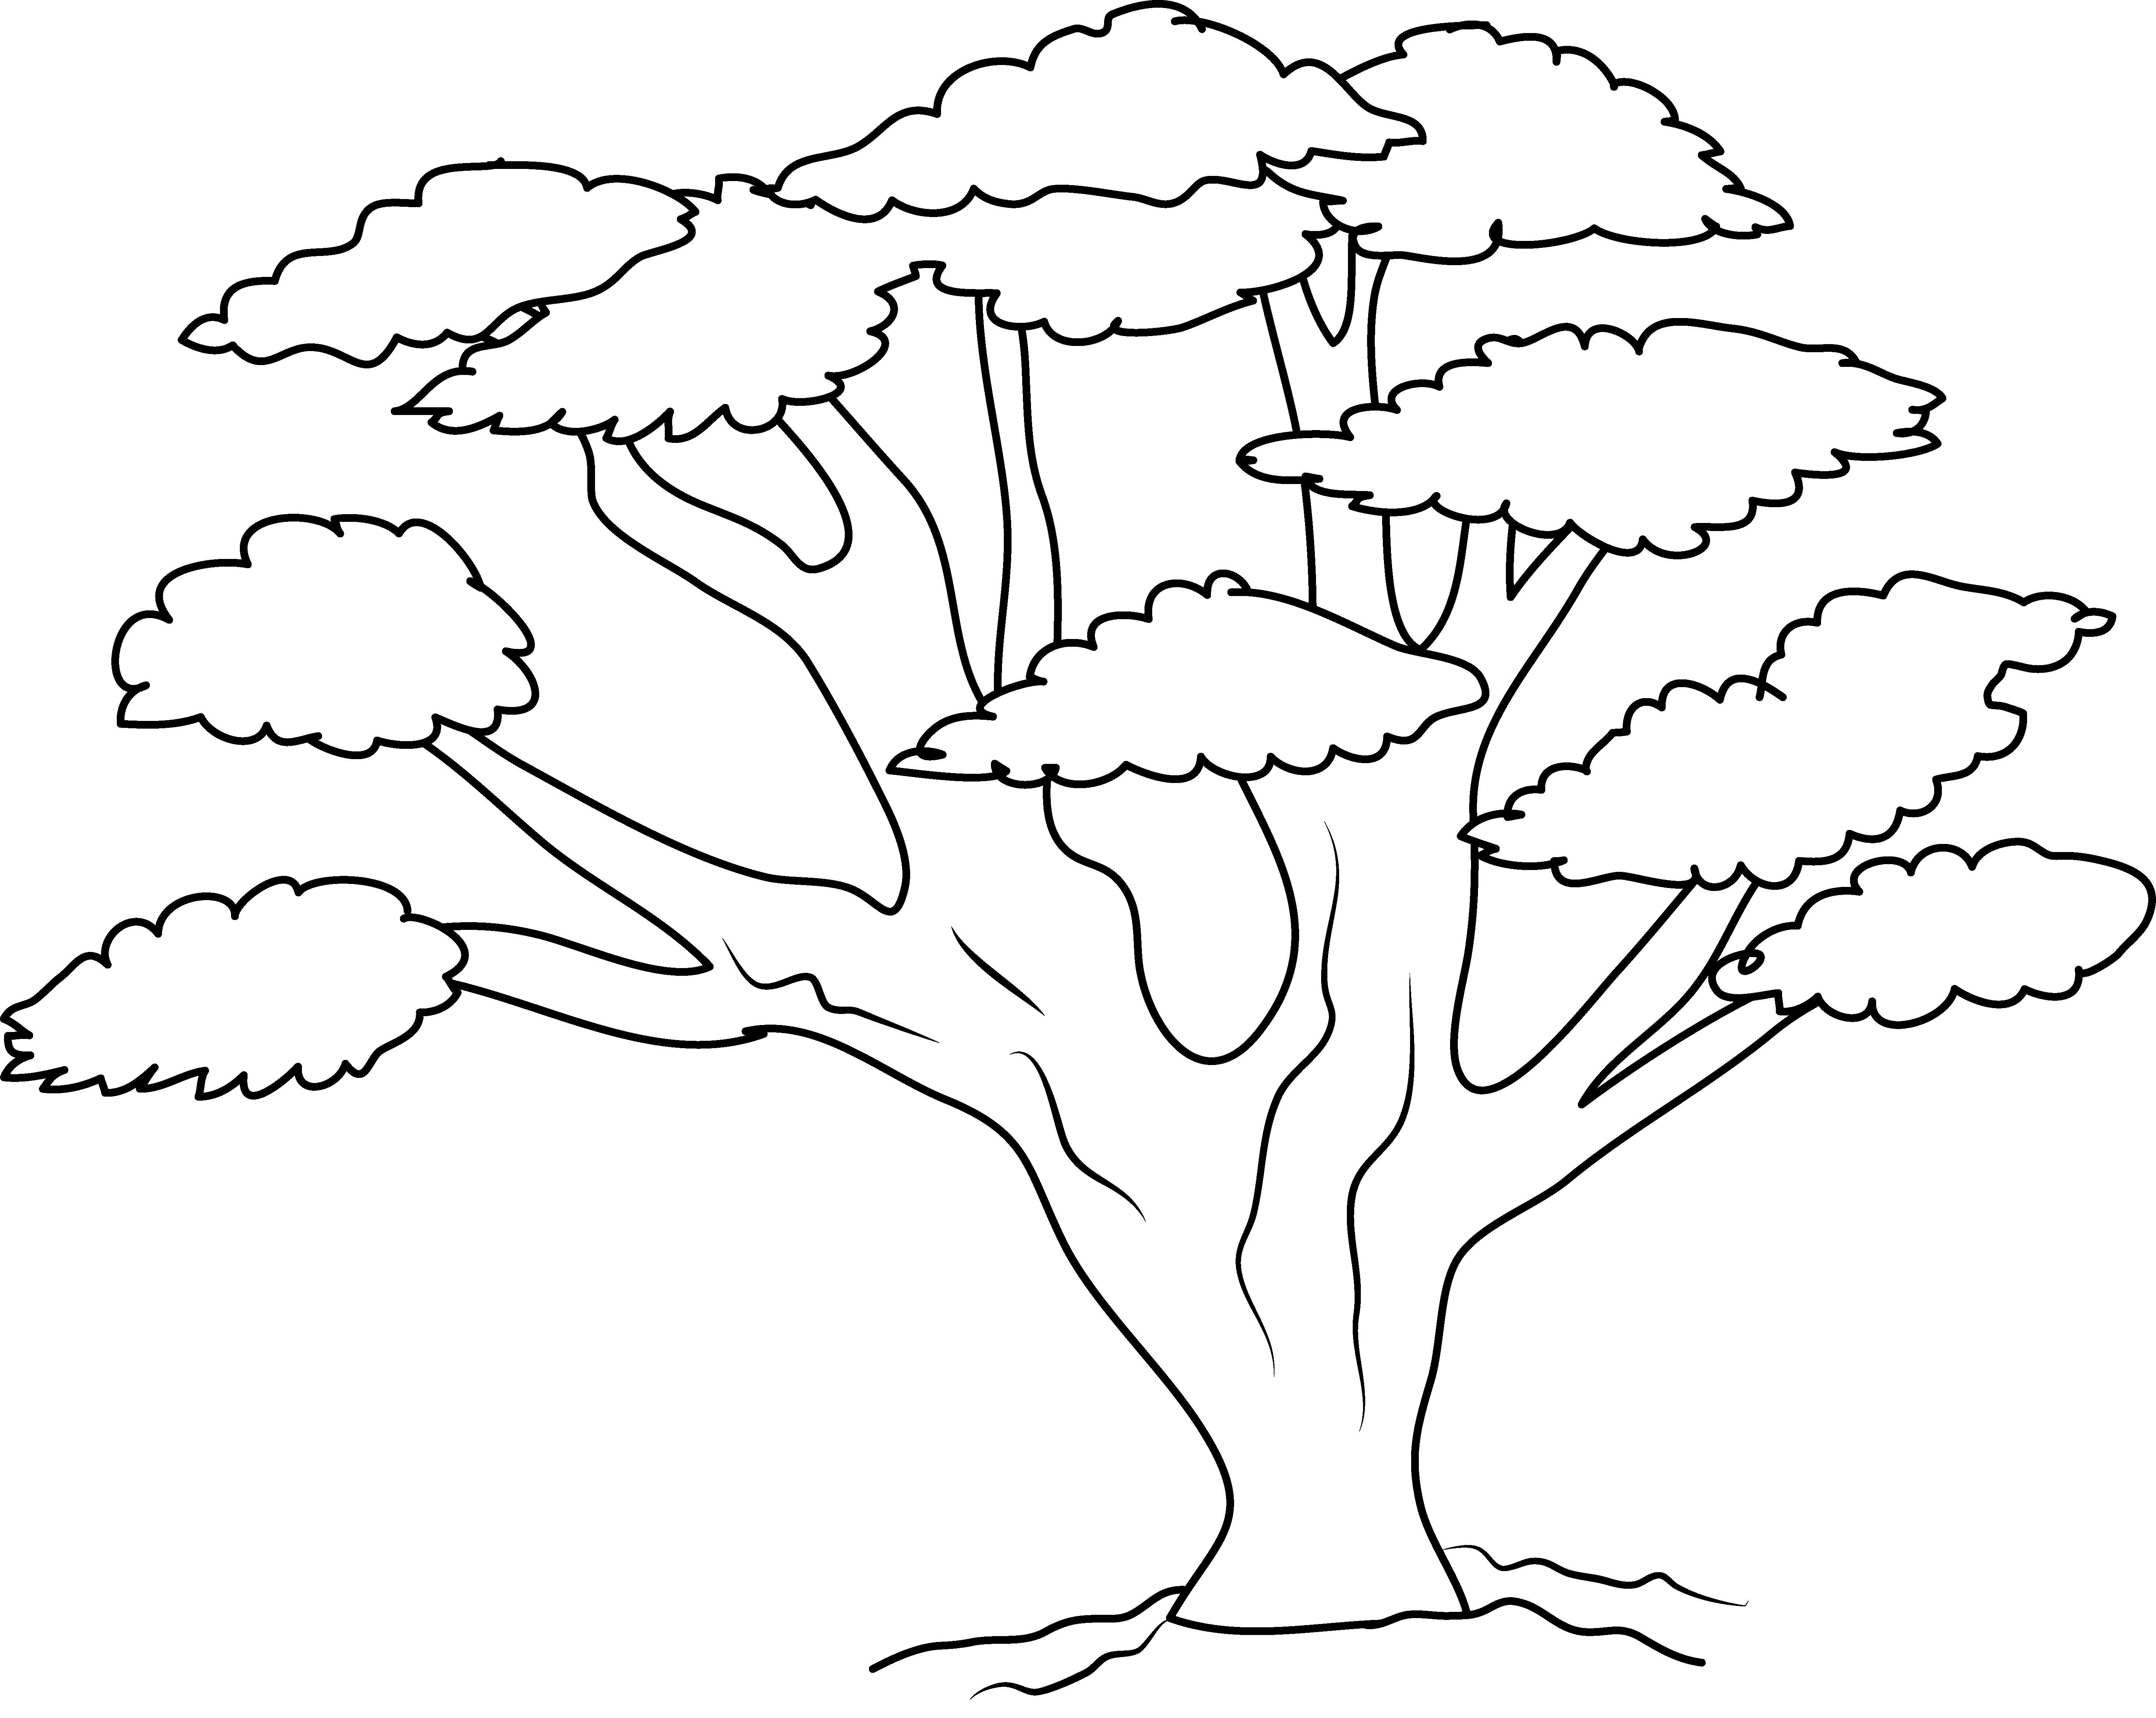 Coloring page of a oak tree clipart vector black and white stock Oak Tree Coloring Page - Free Clip Art vector black and white stock